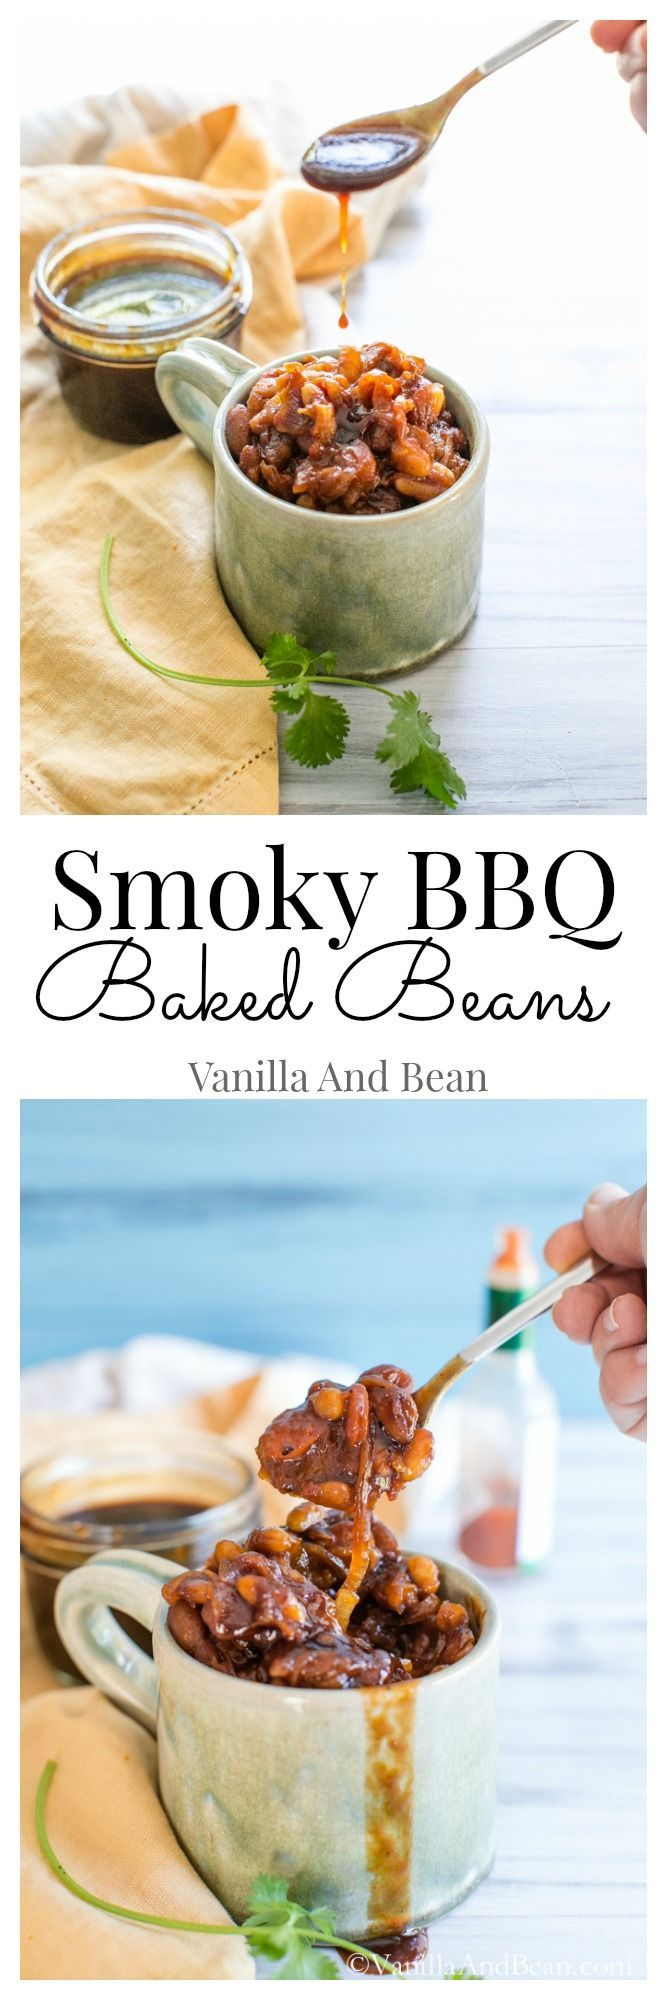 Smoky BBQ Baked Beans | Vanilla And Bean